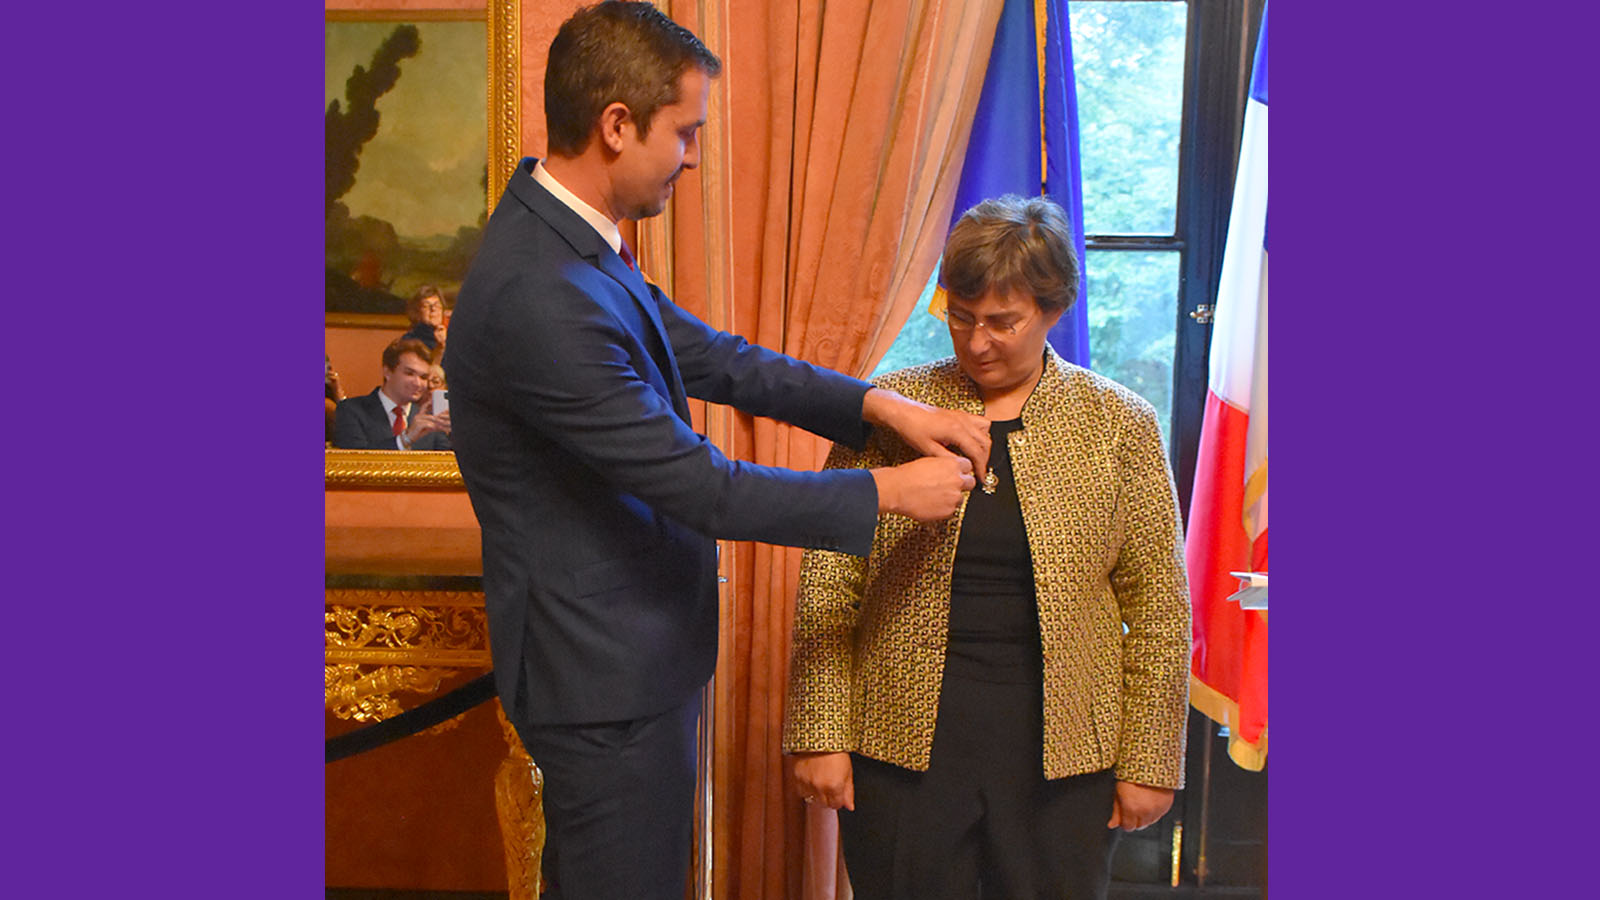 Jessica Neuwirth receiving the insignia of the Knight of the National Order of the Legion of Honor from Jérémie Robert, the Consul General of France in New York.